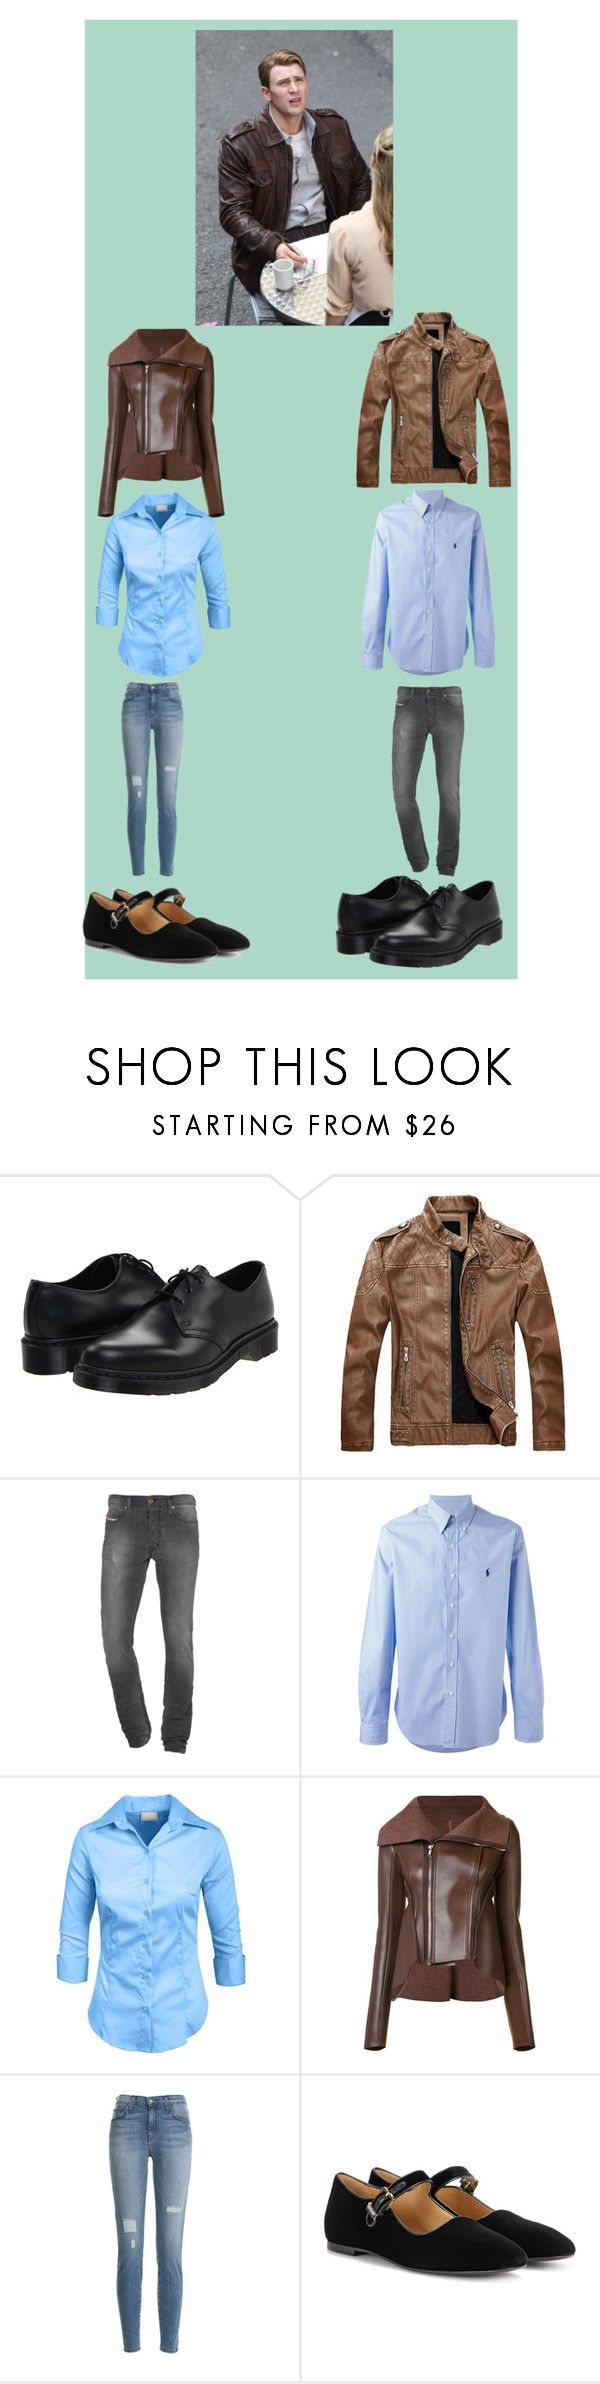 """Matching: Steve Rogers/ Captain America"" by hayzkidrocky ❤ liked on Polyvore featuring Dr. Martens, Diesel, Polo Ralph Lauren, Rick Owens Lilies, Current/Elliott and The Row"